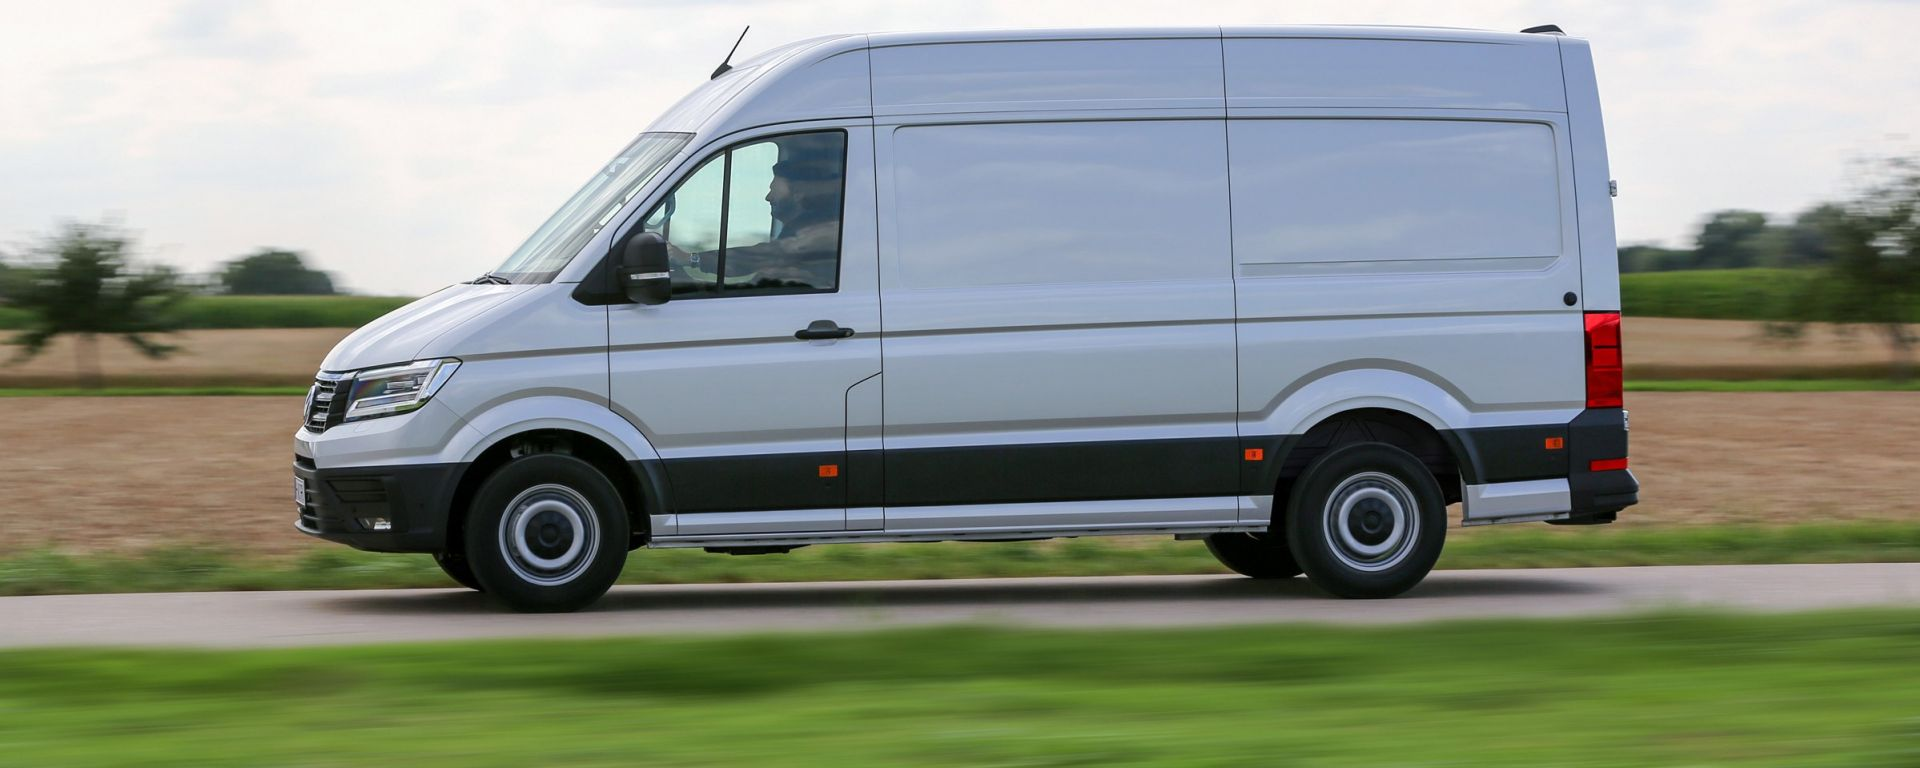 Nuovo Volkswagen Crafter 2017: vista laterale